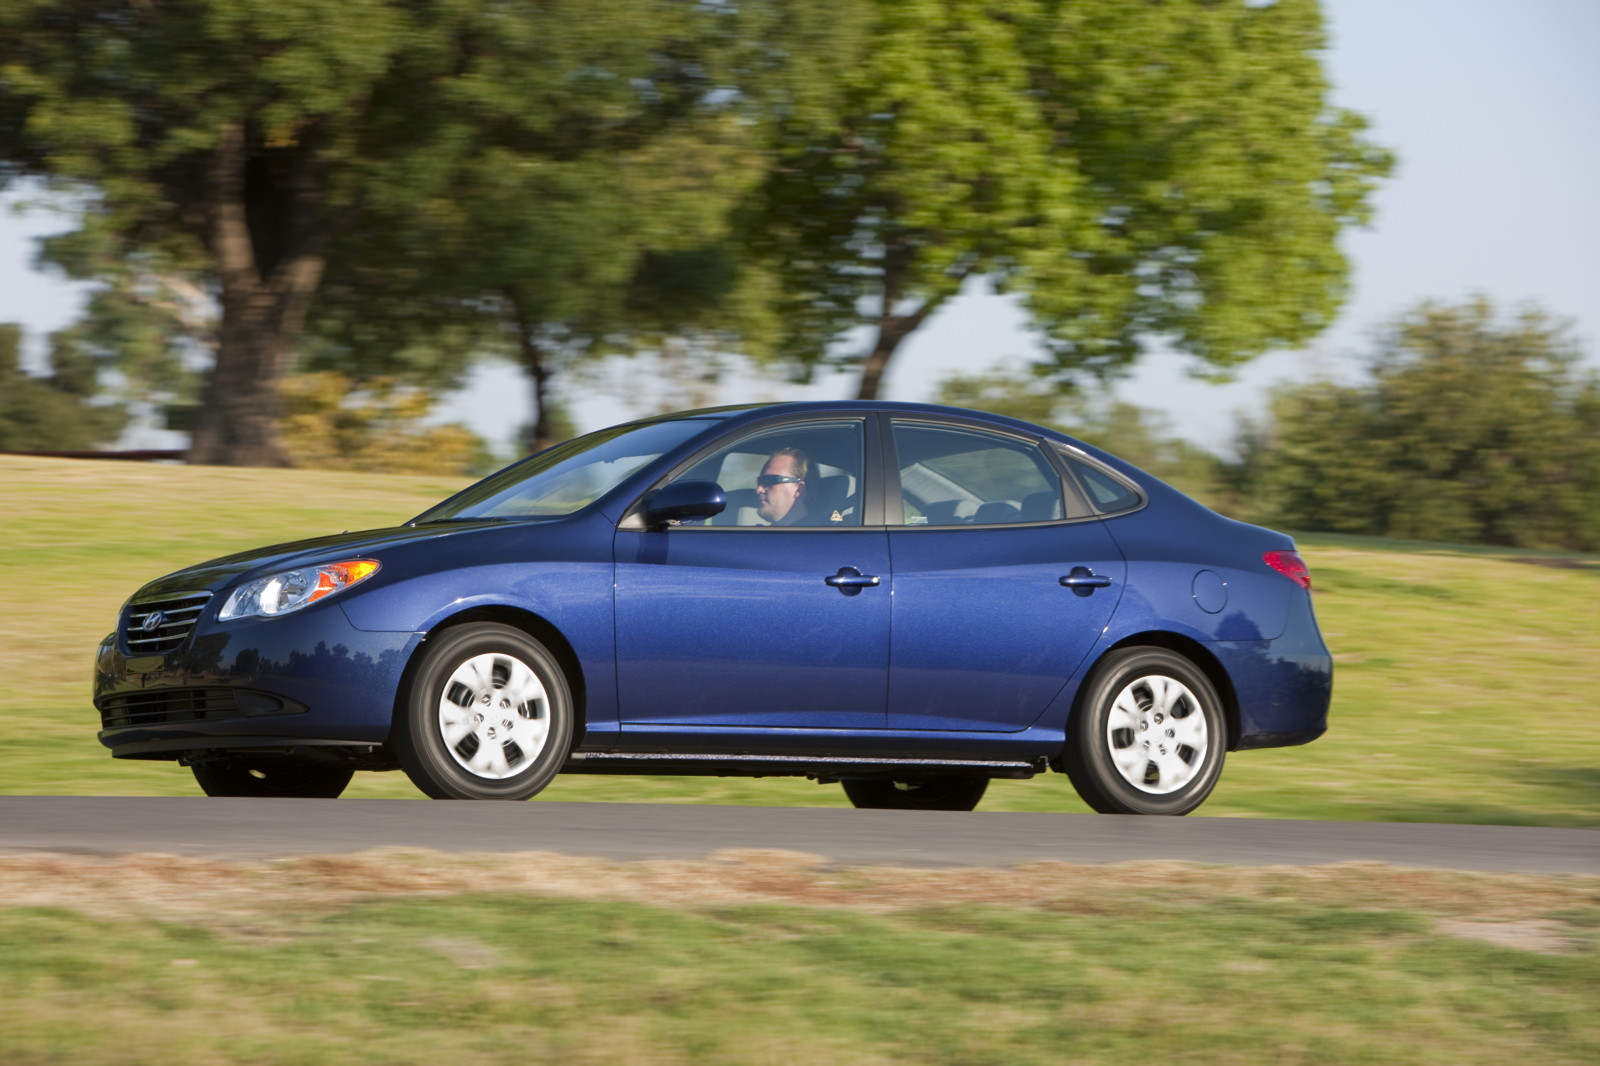 2010 Hyundai Elantra It Isn T Easy Being Green But Blue Has Potential